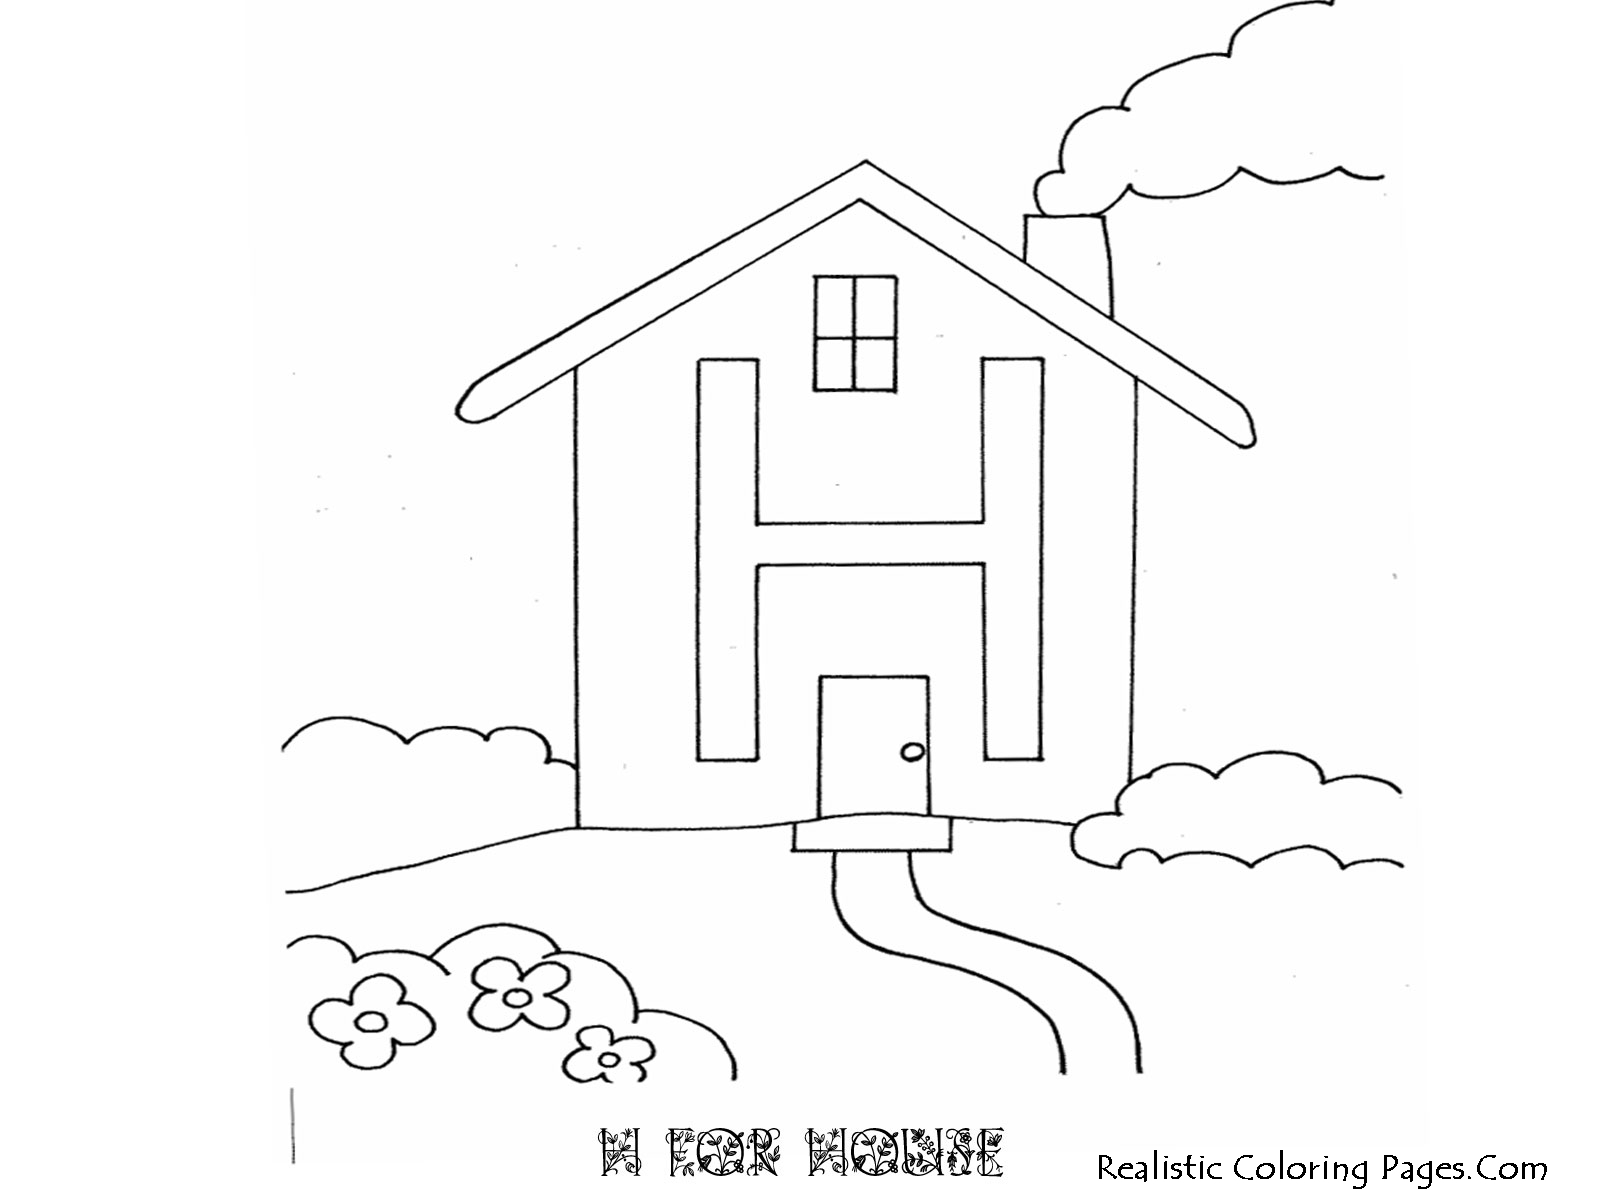 h coloring pages - photo#50